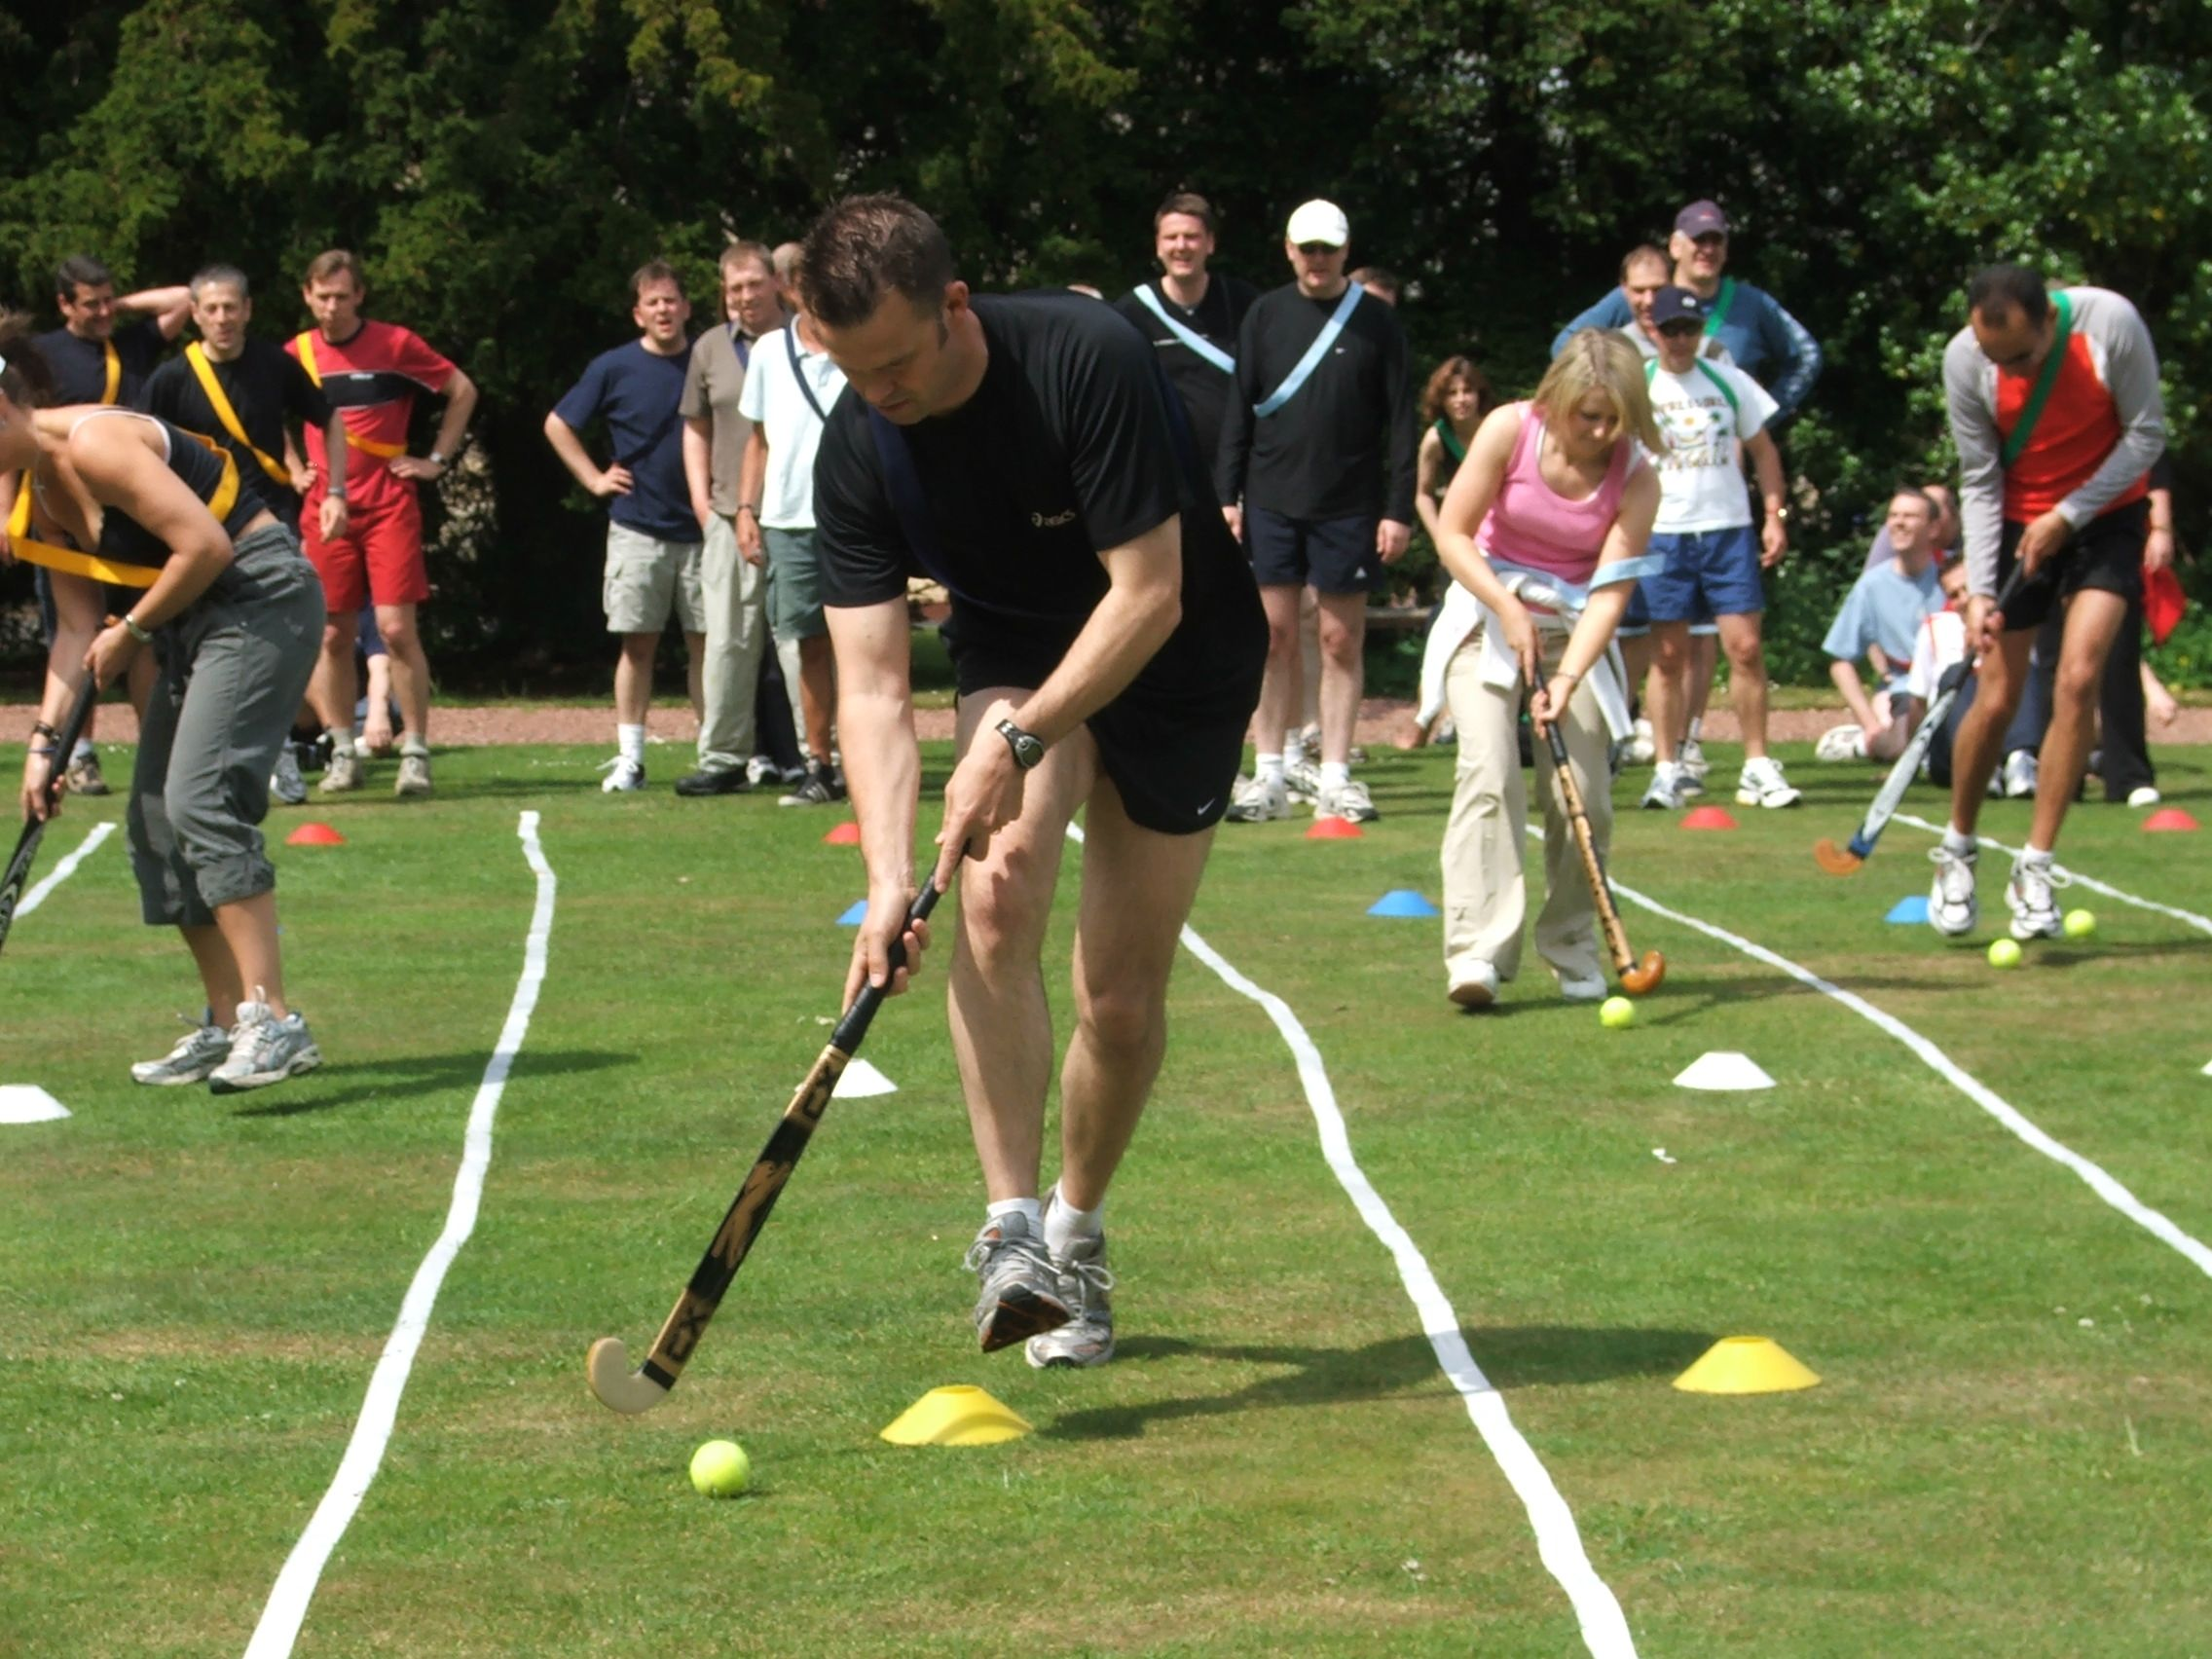 Remember school sports day at school? That was a day of